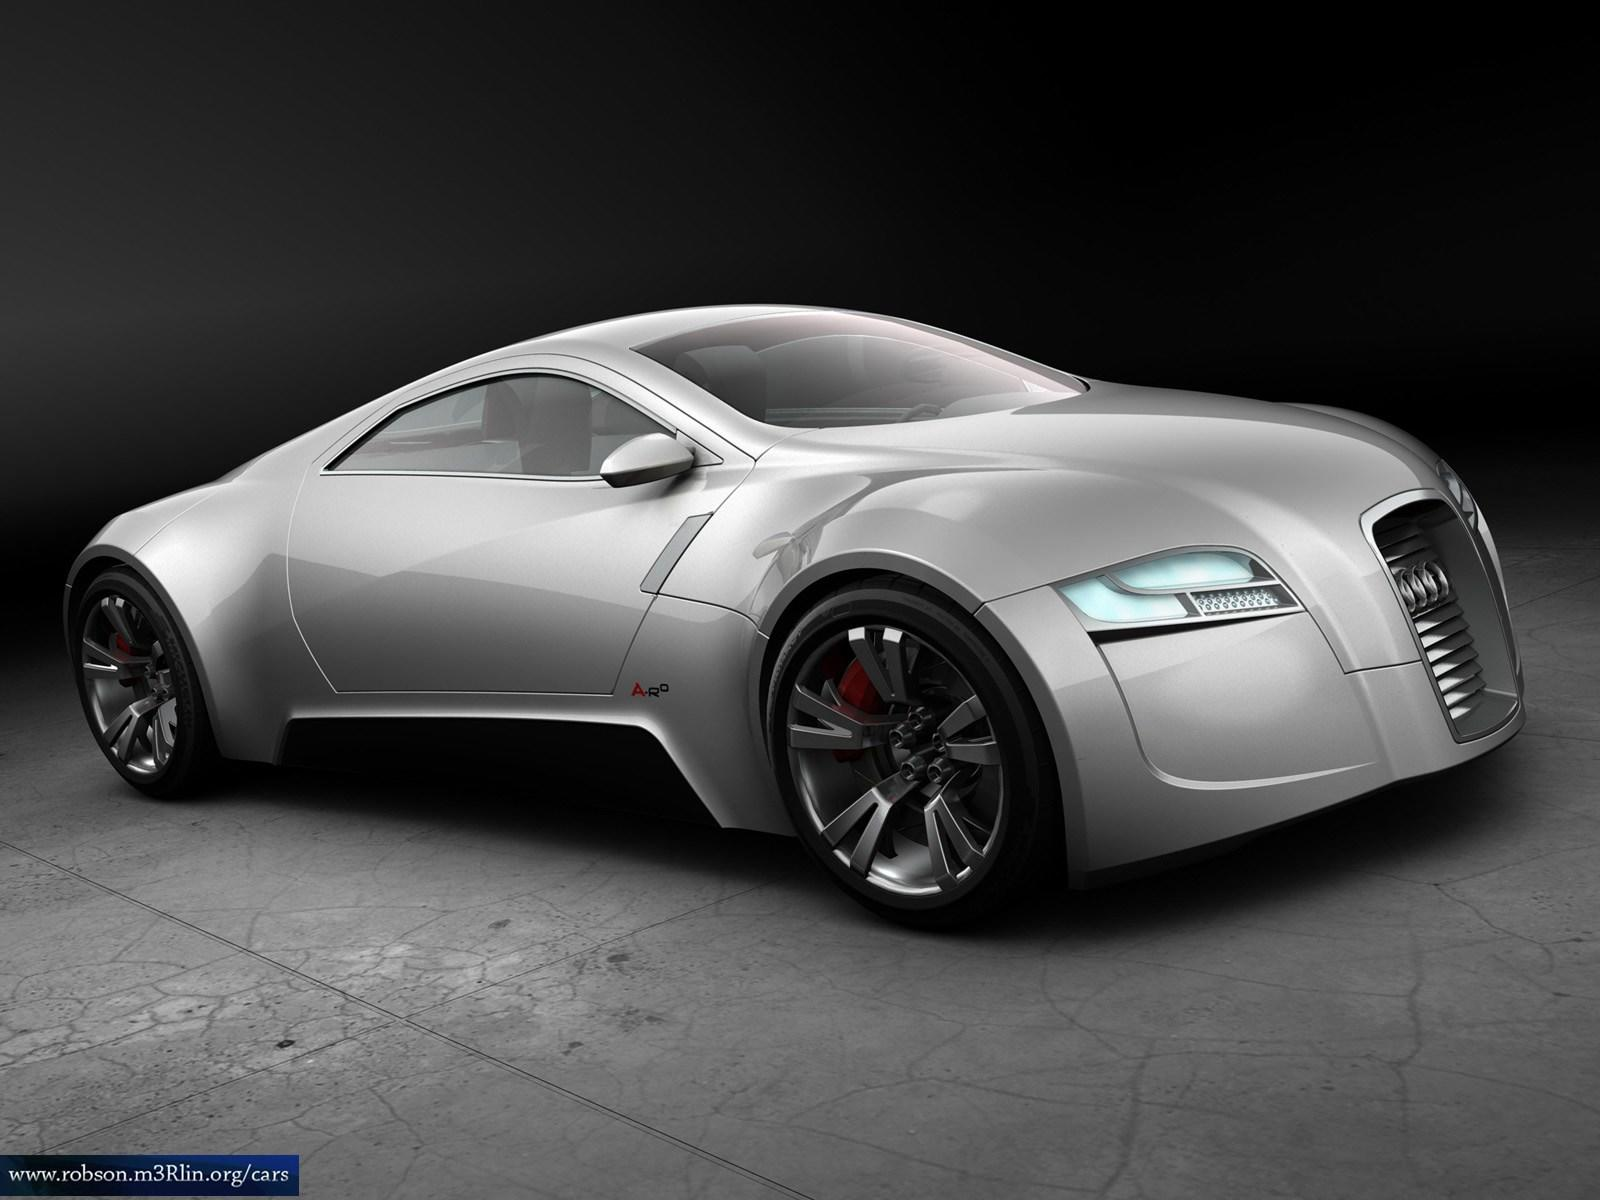 Latest 25 Best Audi Cars Wallpapers Download For Free – Technosamrat Free Download